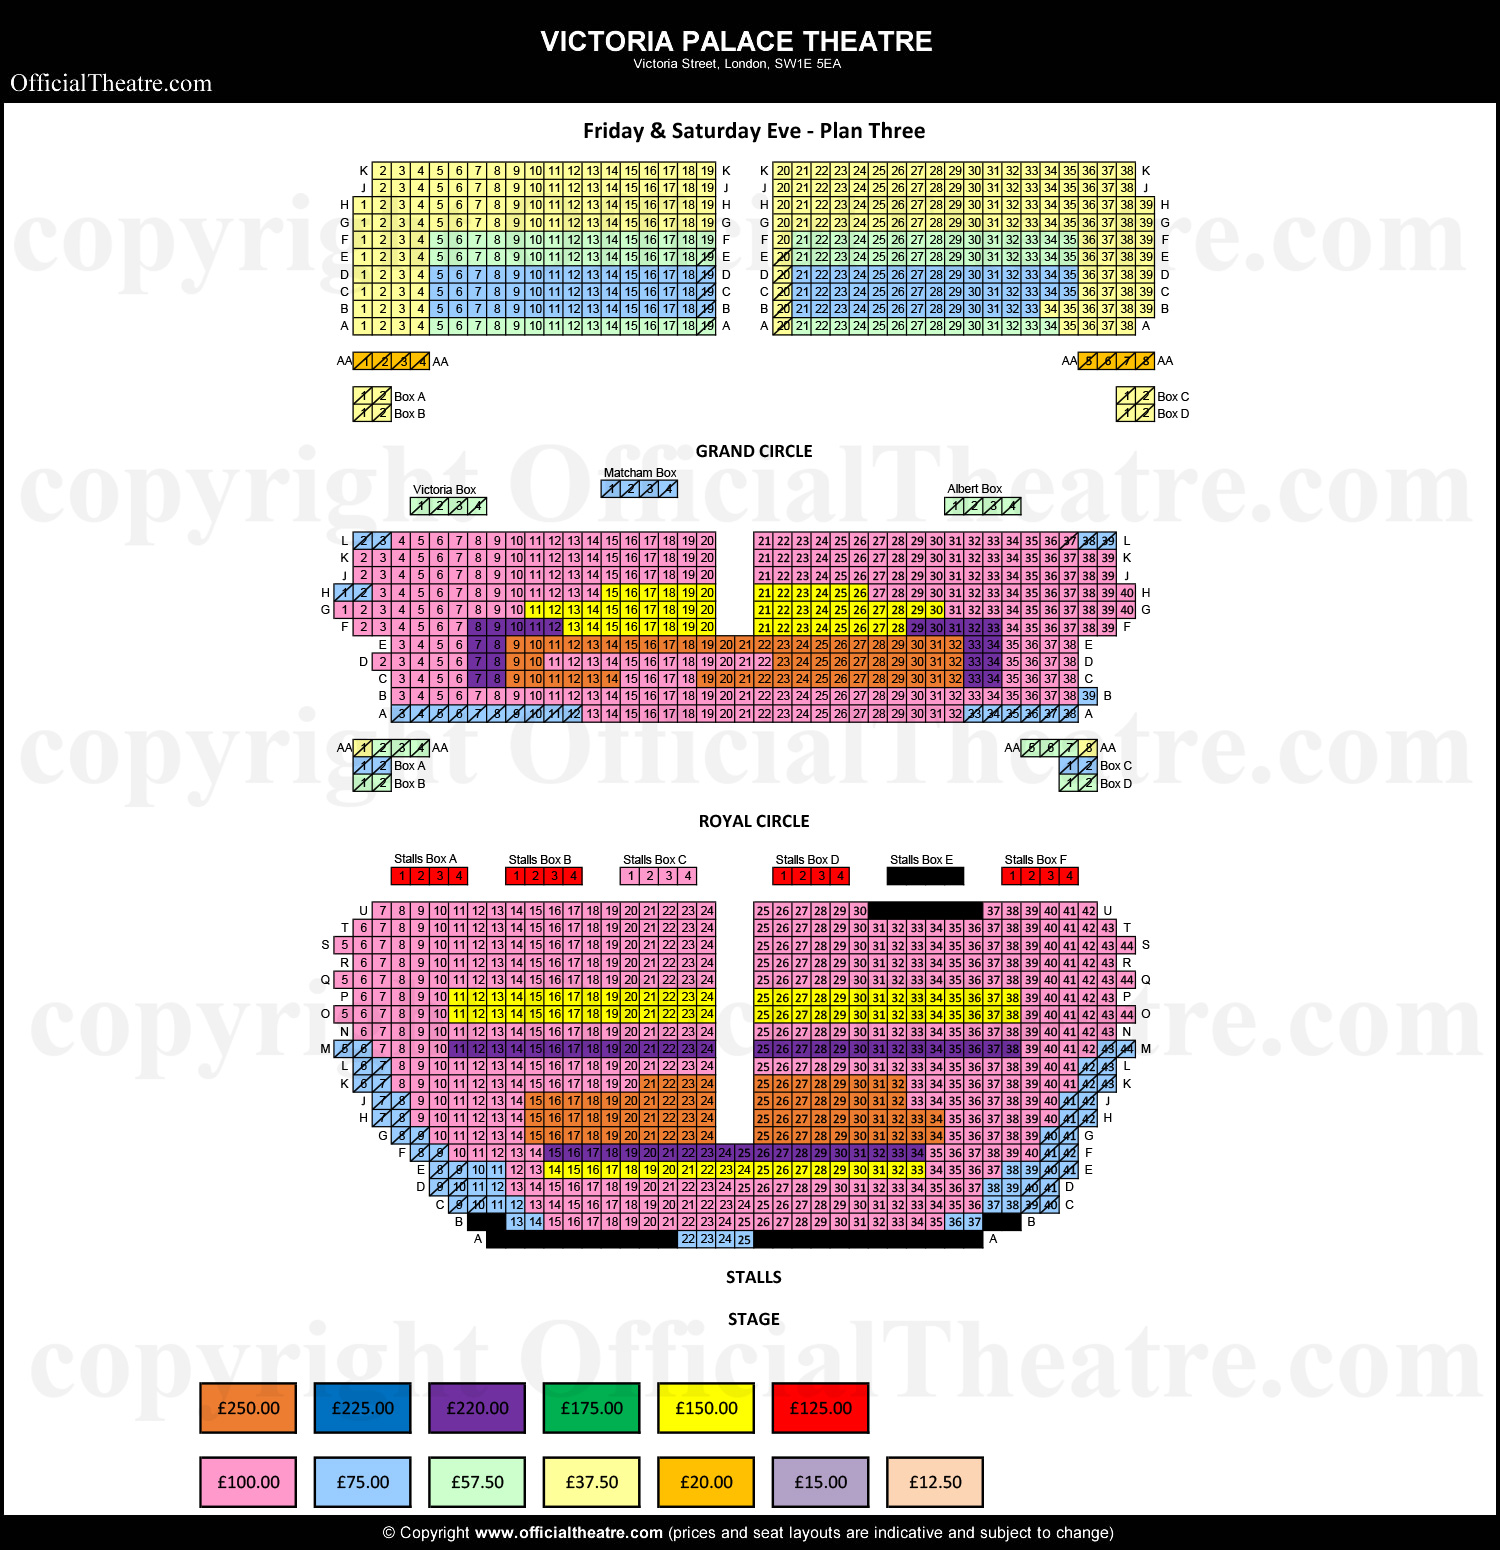 Victoria-Palace-Theatre-seat-prices-Hamilton